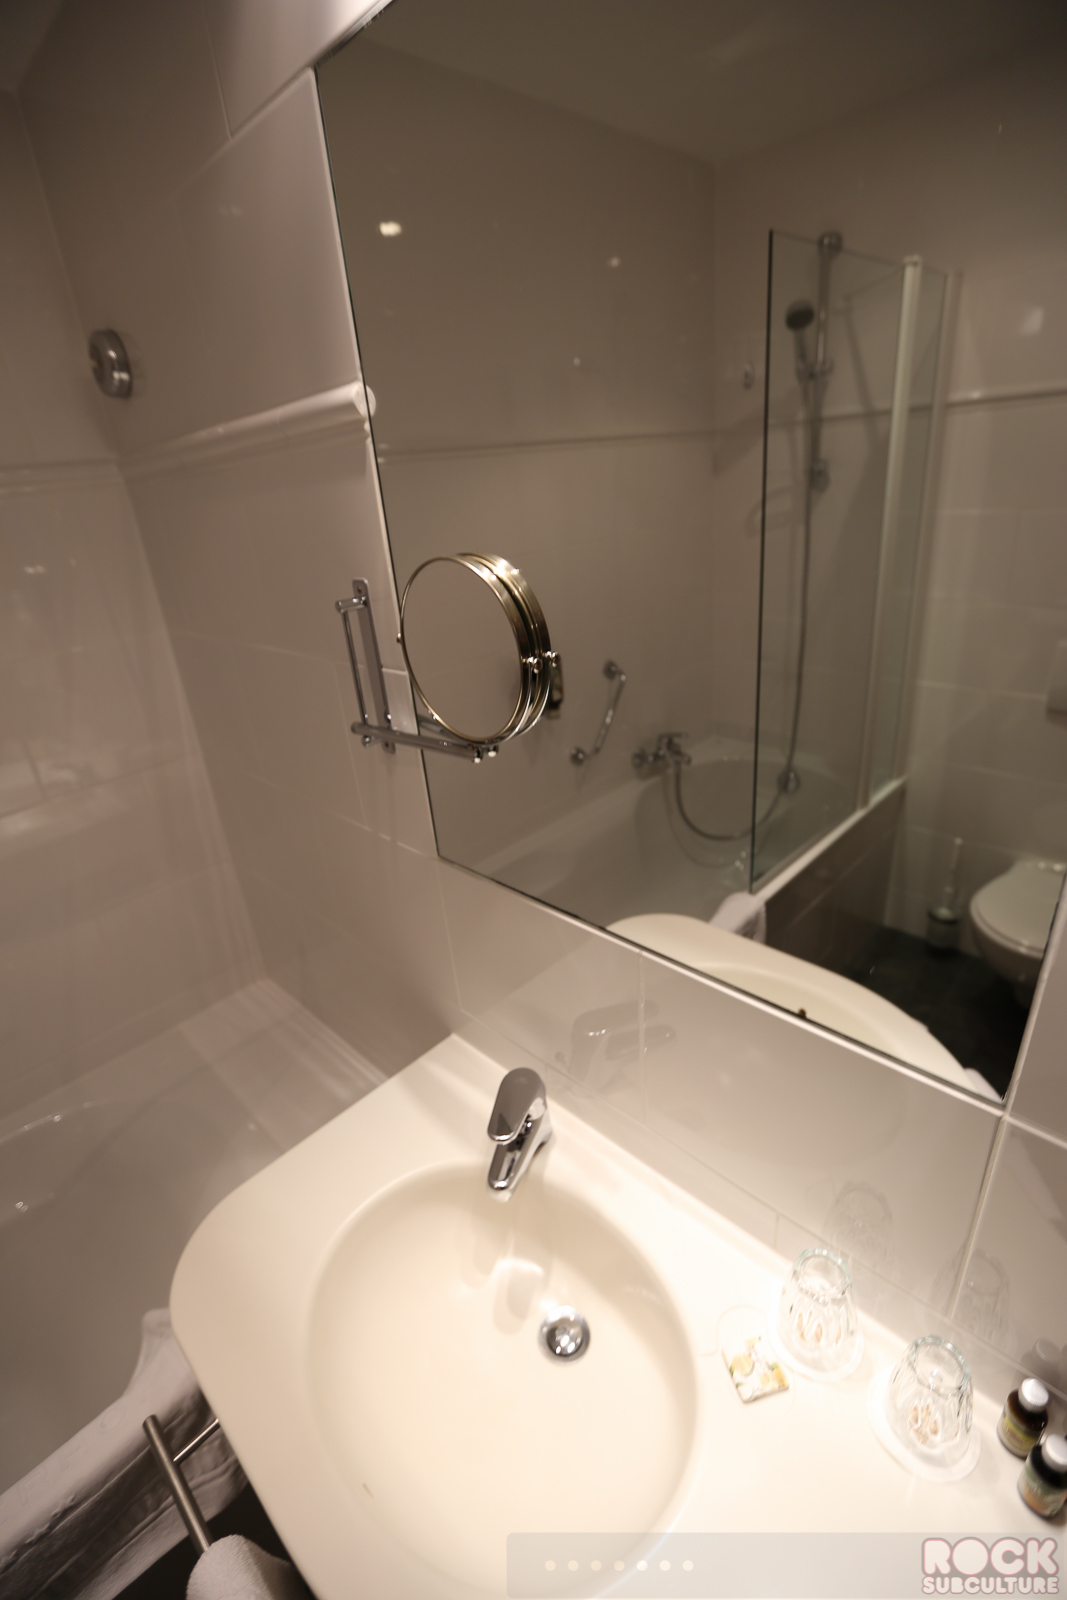 Bathroom Sinks Houston : Hotel/Resort Review: Best Western Premier Kaiserhof Wien -Vienna ...